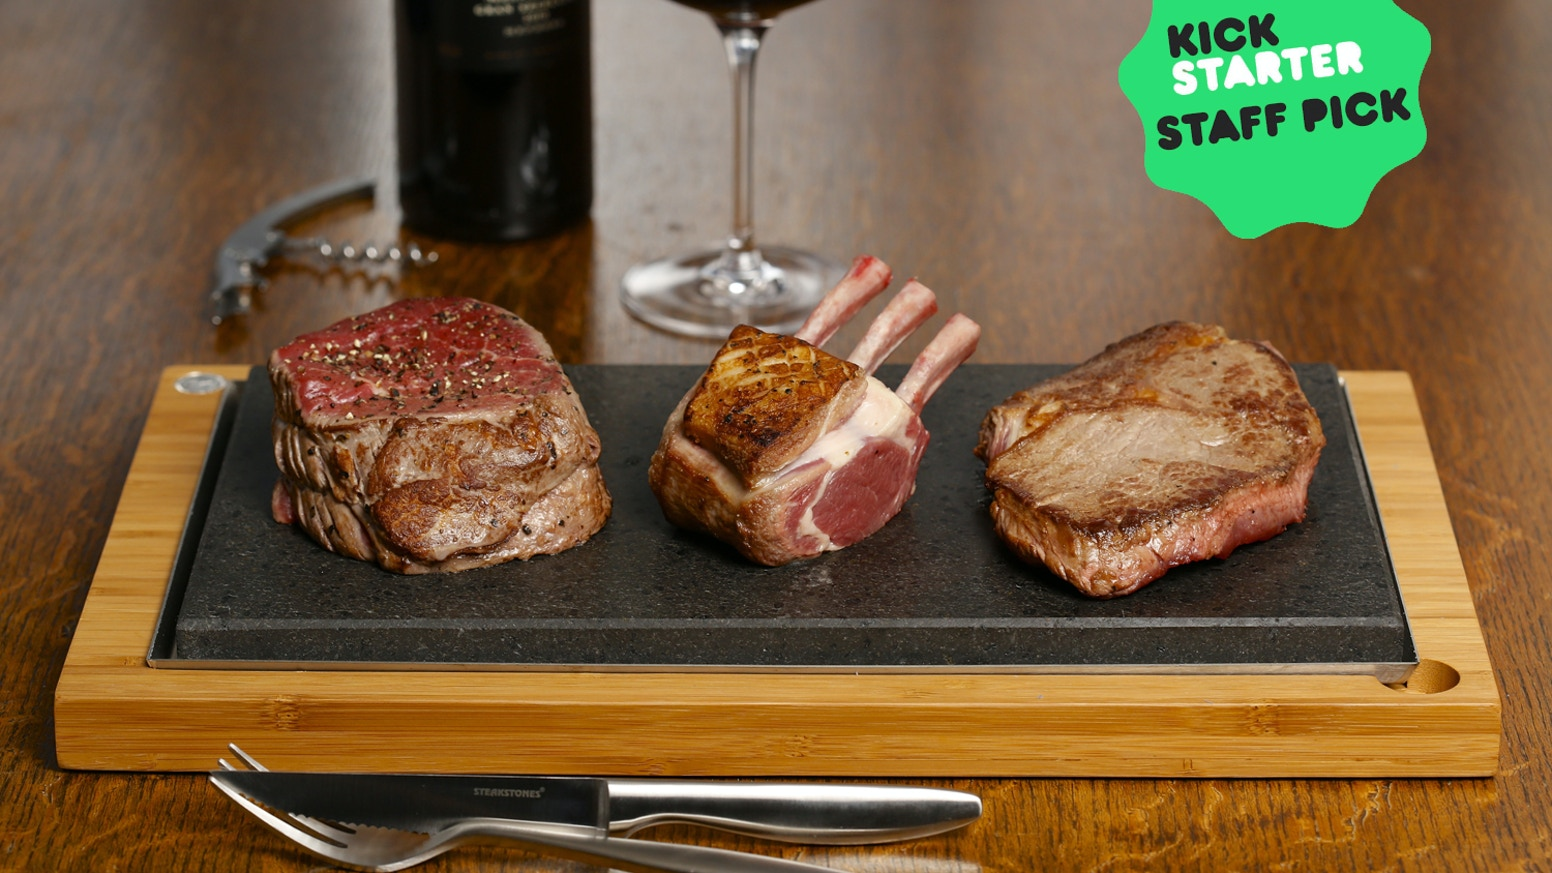 SteakStones allow you to cook every bite of steak exactly as you like and enjoy every last mouthful as hot and delicious as the first.